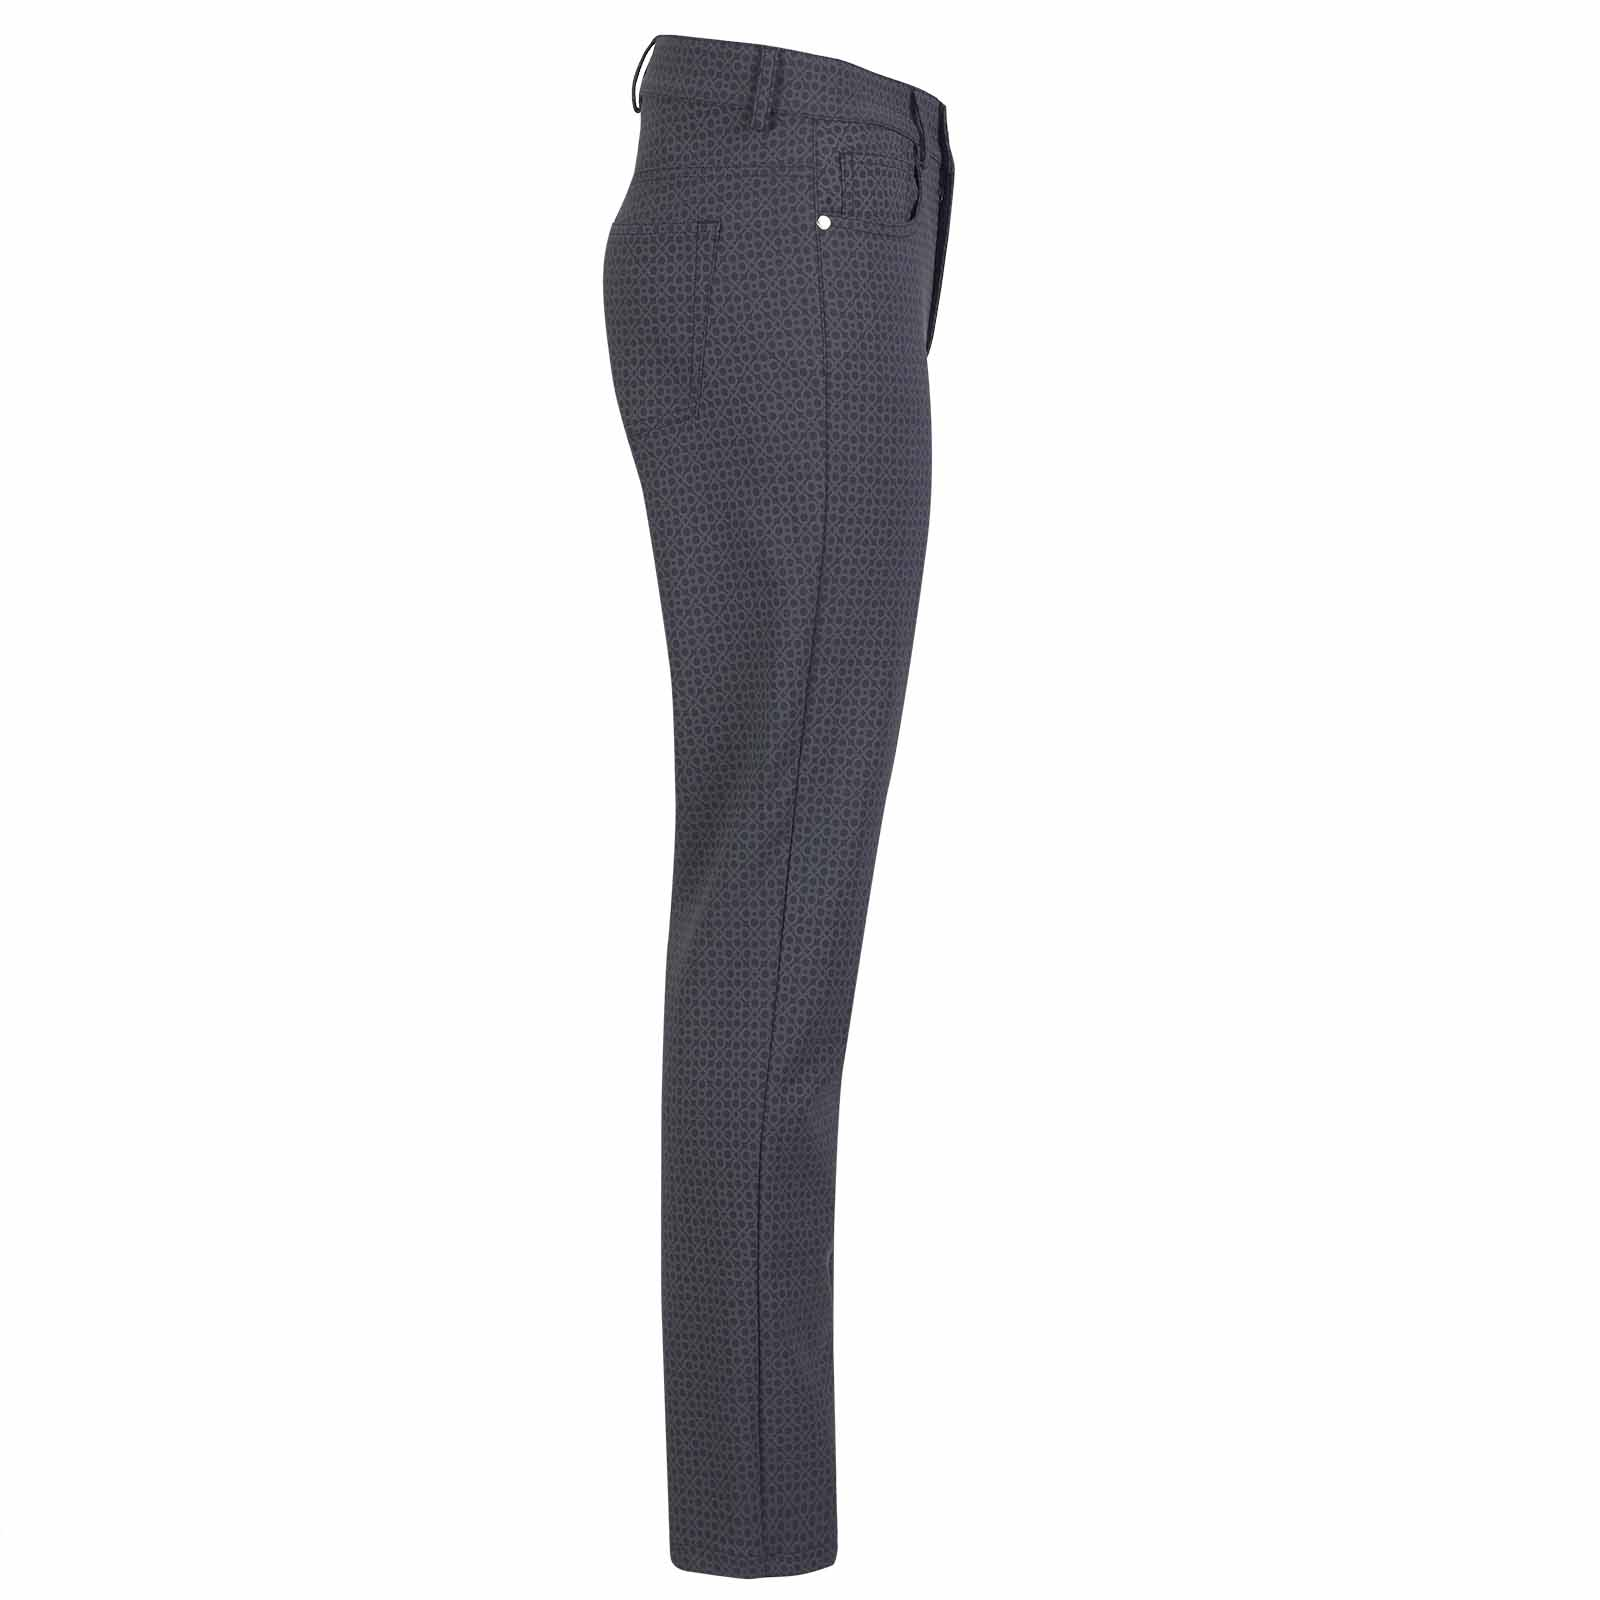 Damen 7/8 Print-Golfhose aus 4-Way-Stretch mit modischem Muster